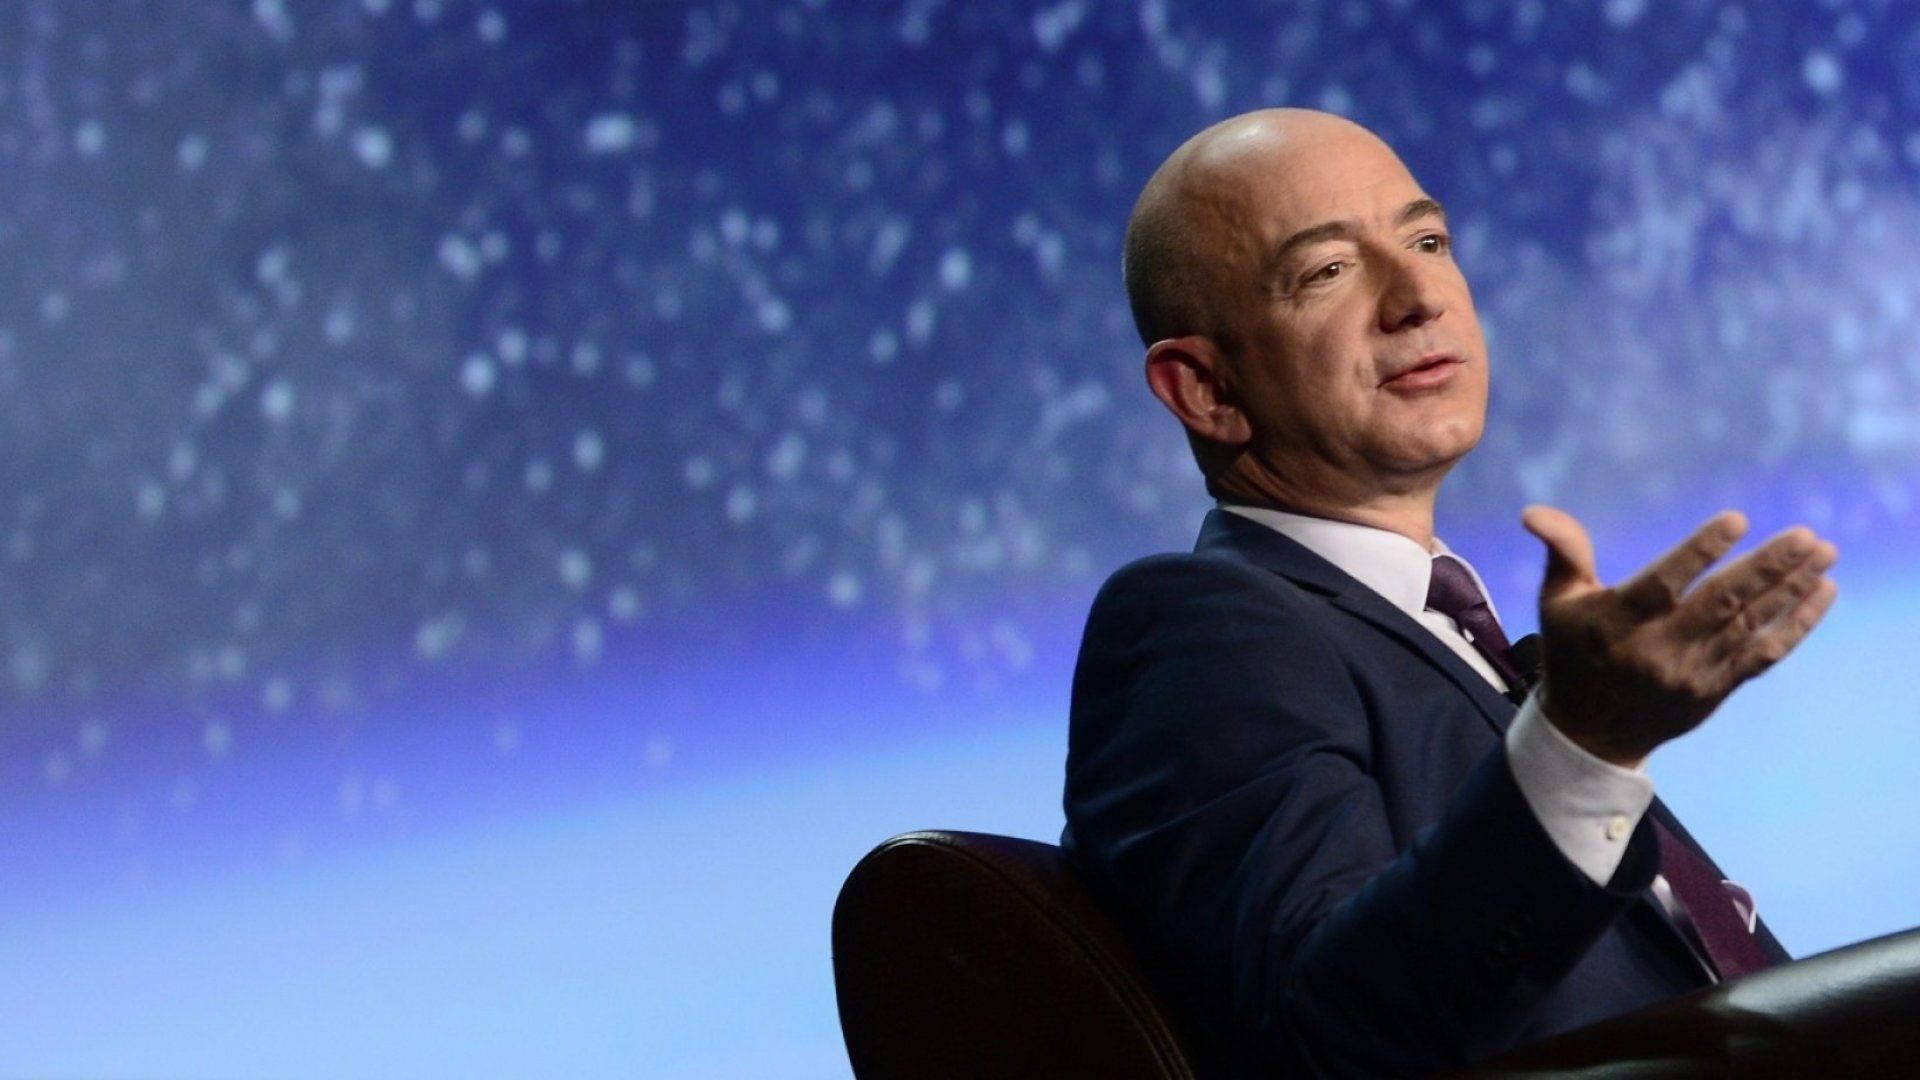 The Bezos Way: 3 Powerful Takeaways About His Captivating Leadership Style